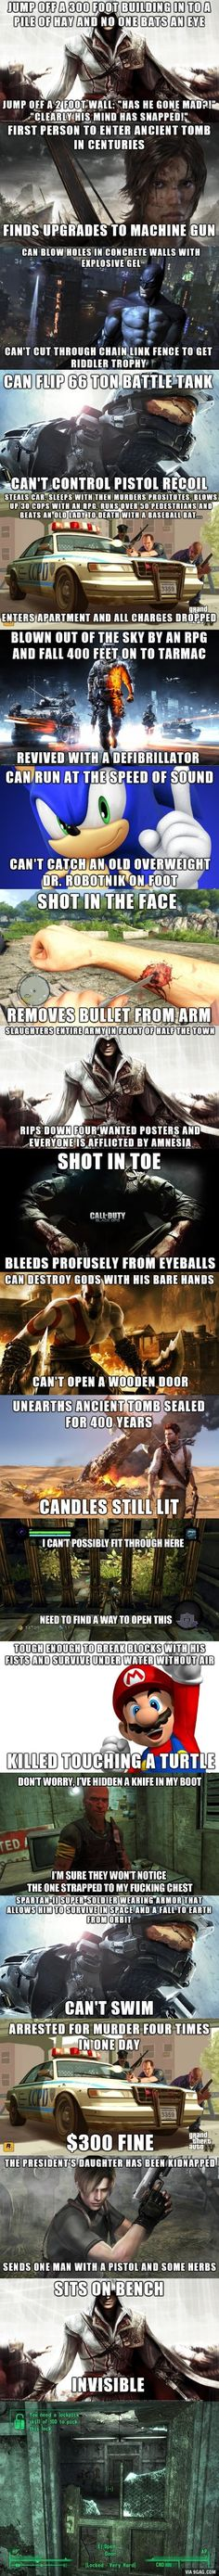 Video Game logic...Kassie will appreciate this even more than me.